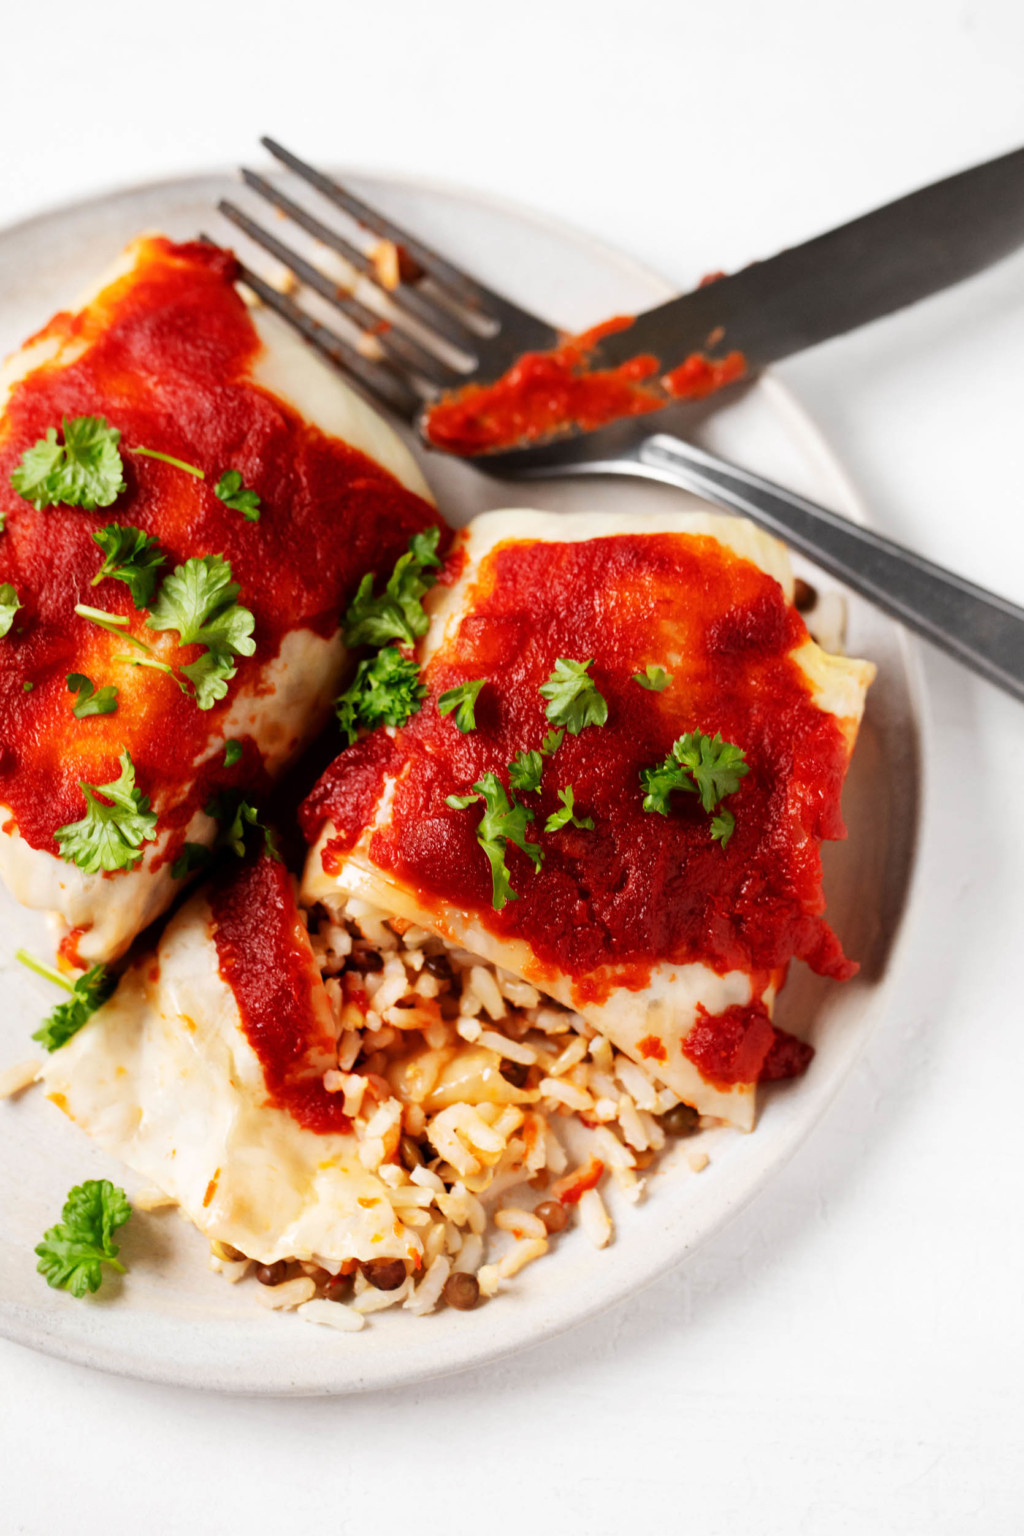 Two stuffed cabbage rolls, covered in tomato sauce, have been laid out on a plate and sliced into with a fork and knife.